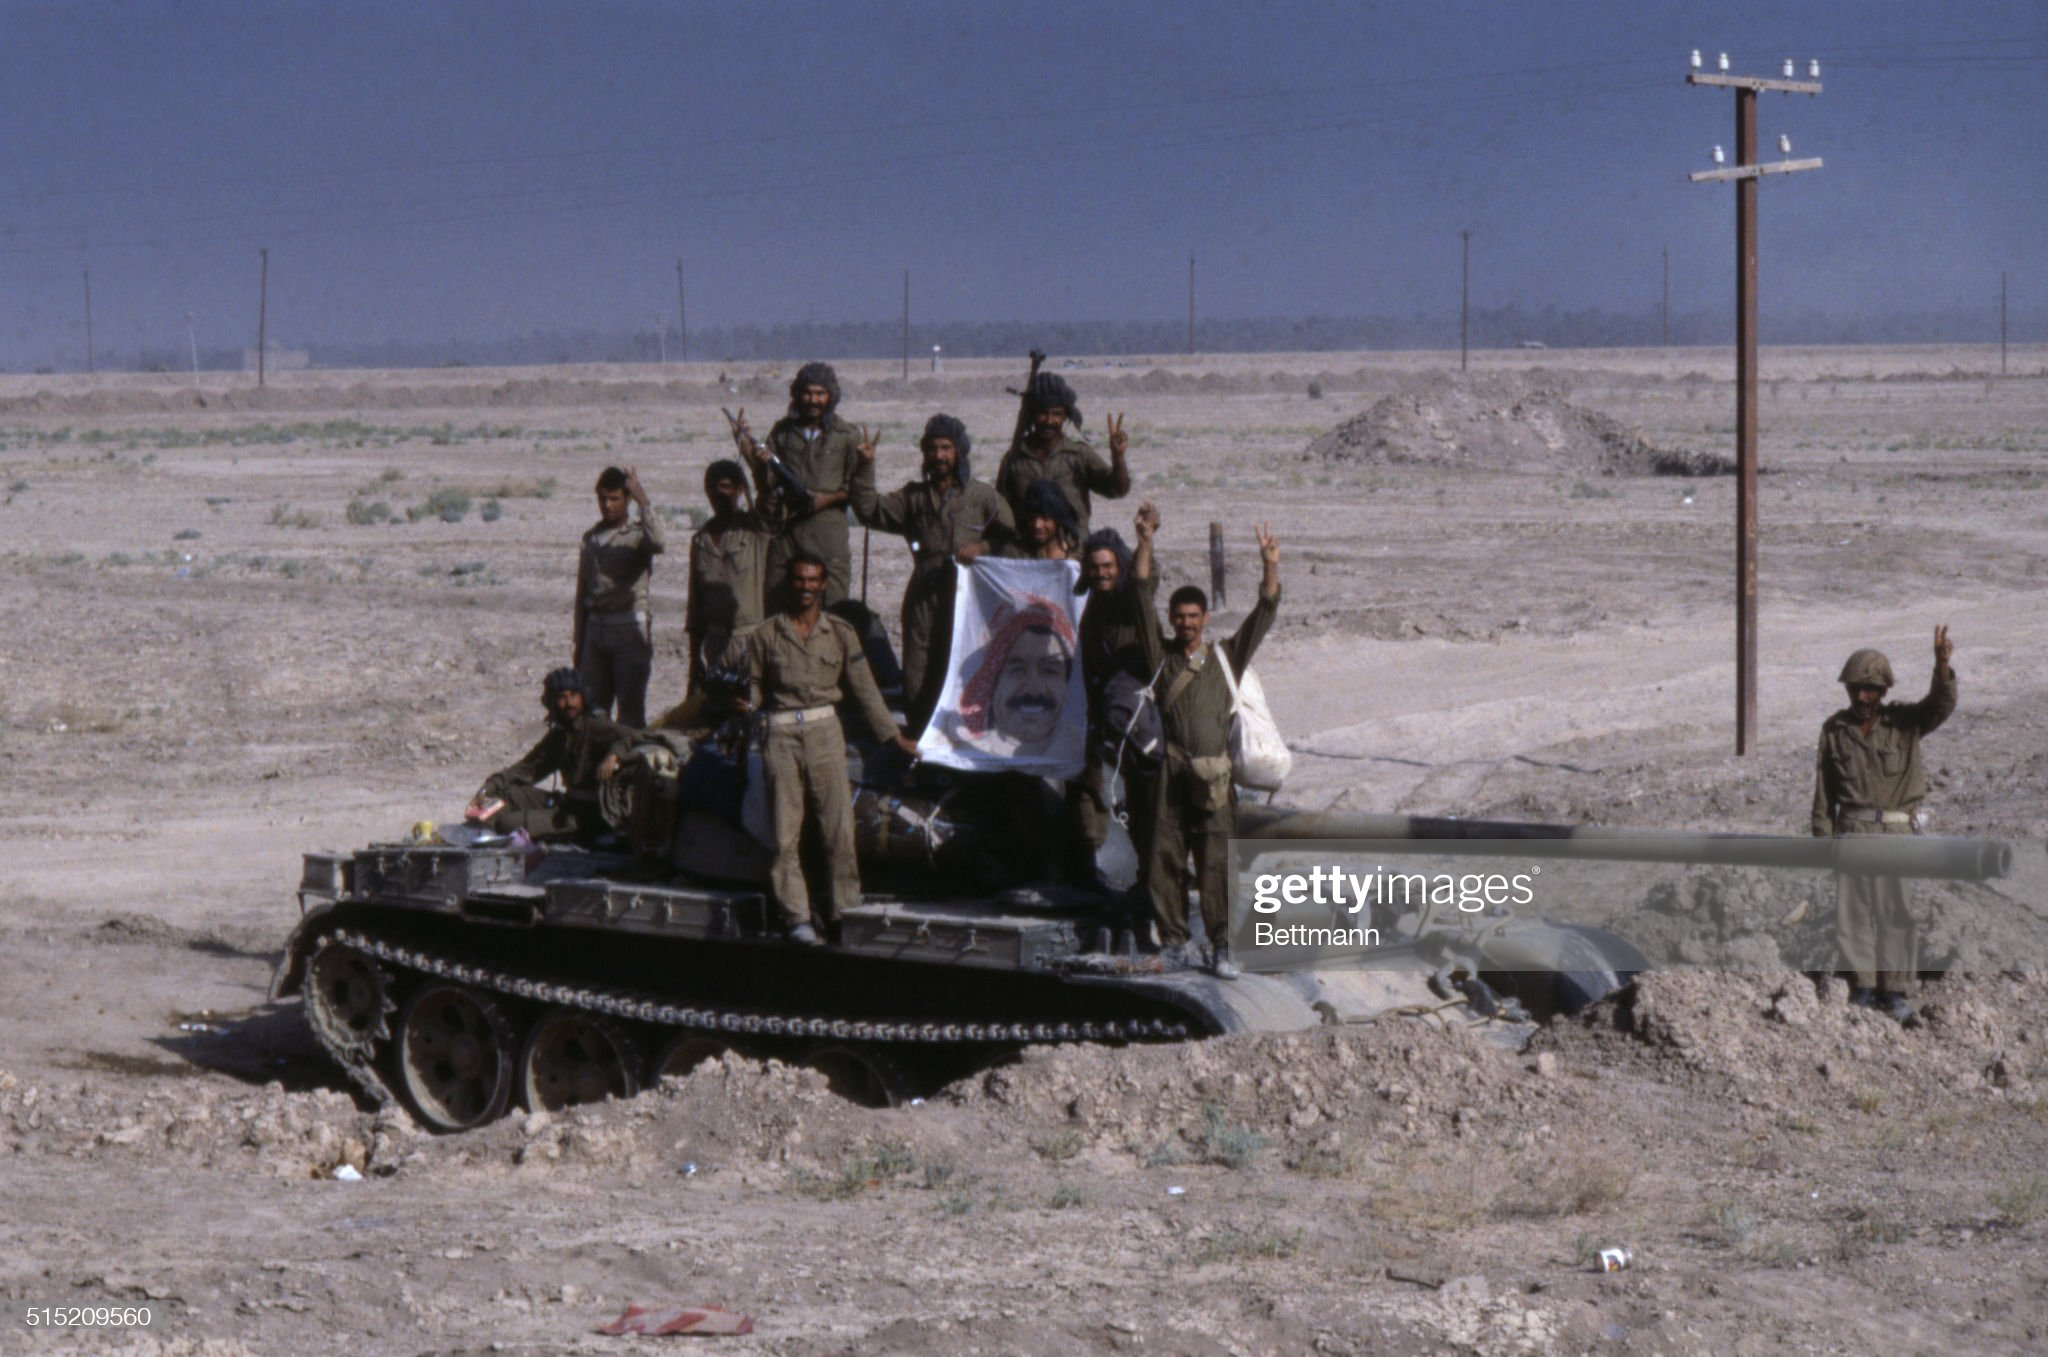 https://media.gettyimages.com/photos/iraqi-troops-give-the-v-for-victory-as-they-stand-atop-their-tank-927-picture-id515209560?s=2048x2048